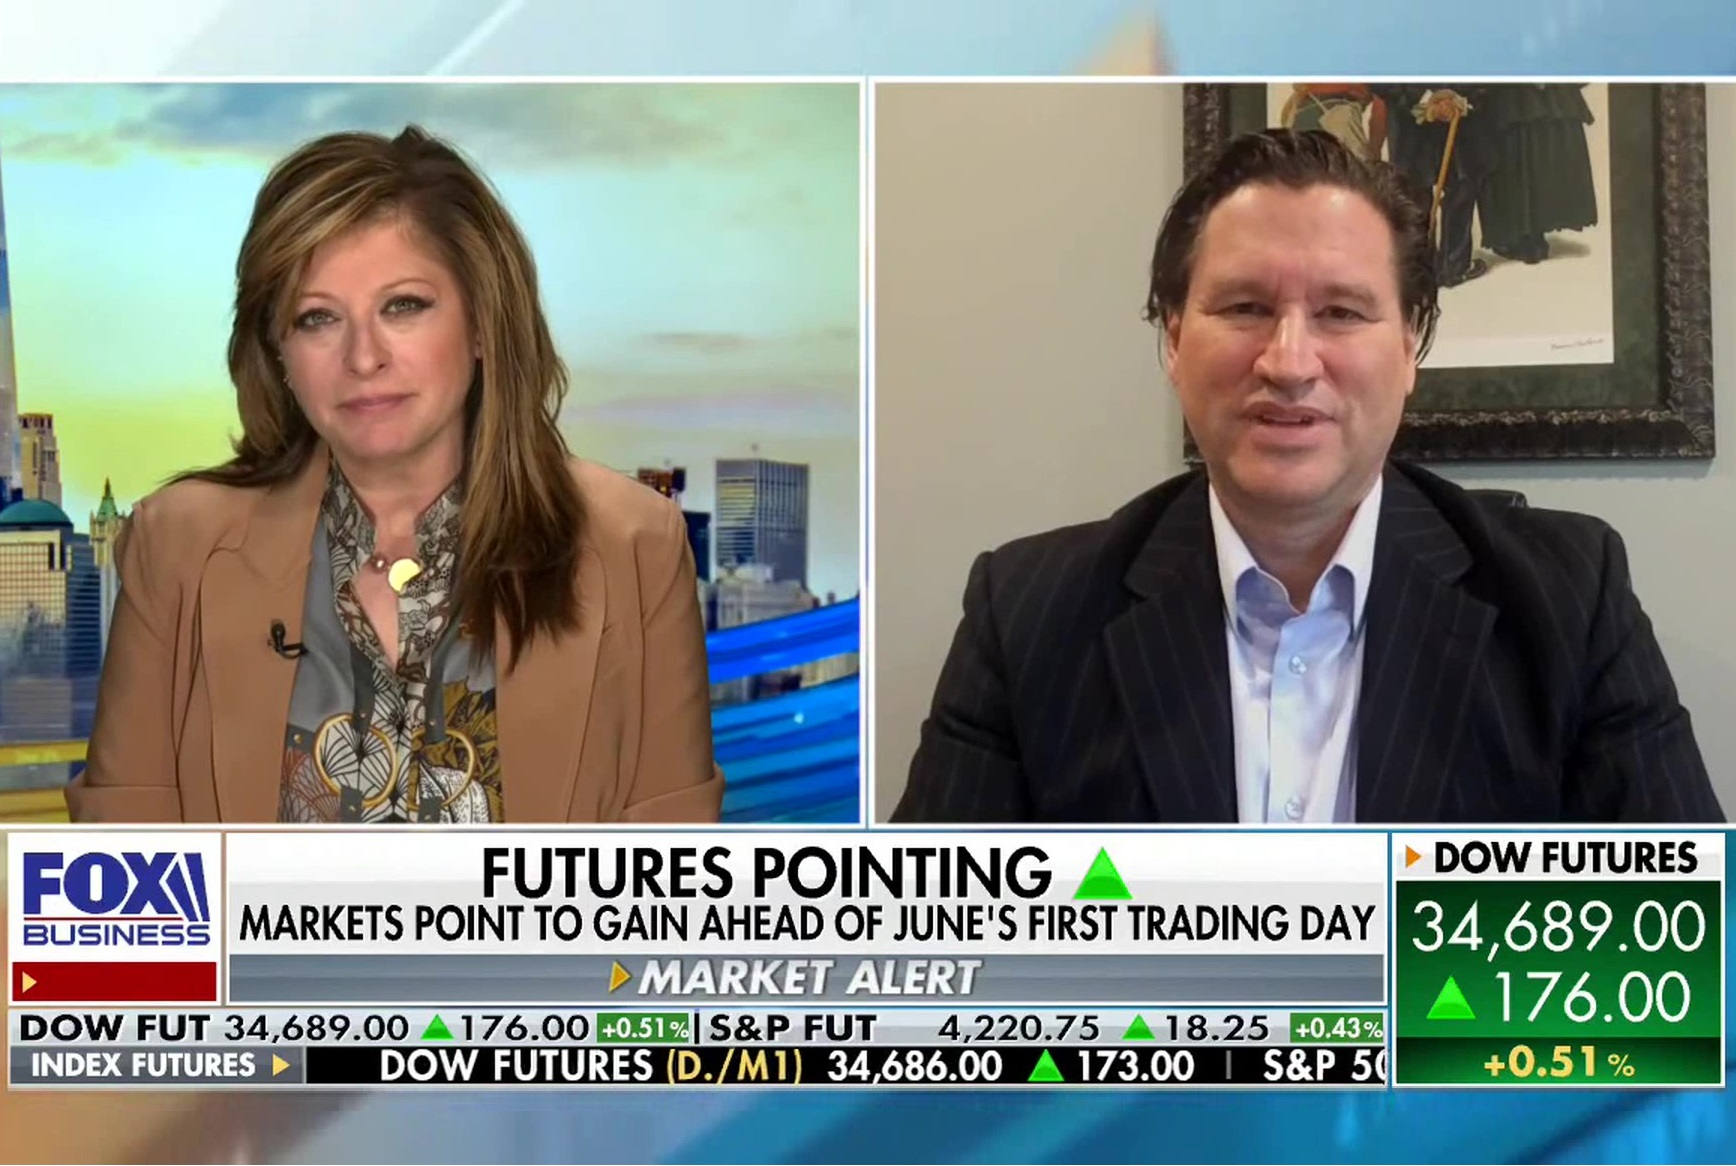 Markets Point To Gain Ahead Of June's First Trading Day